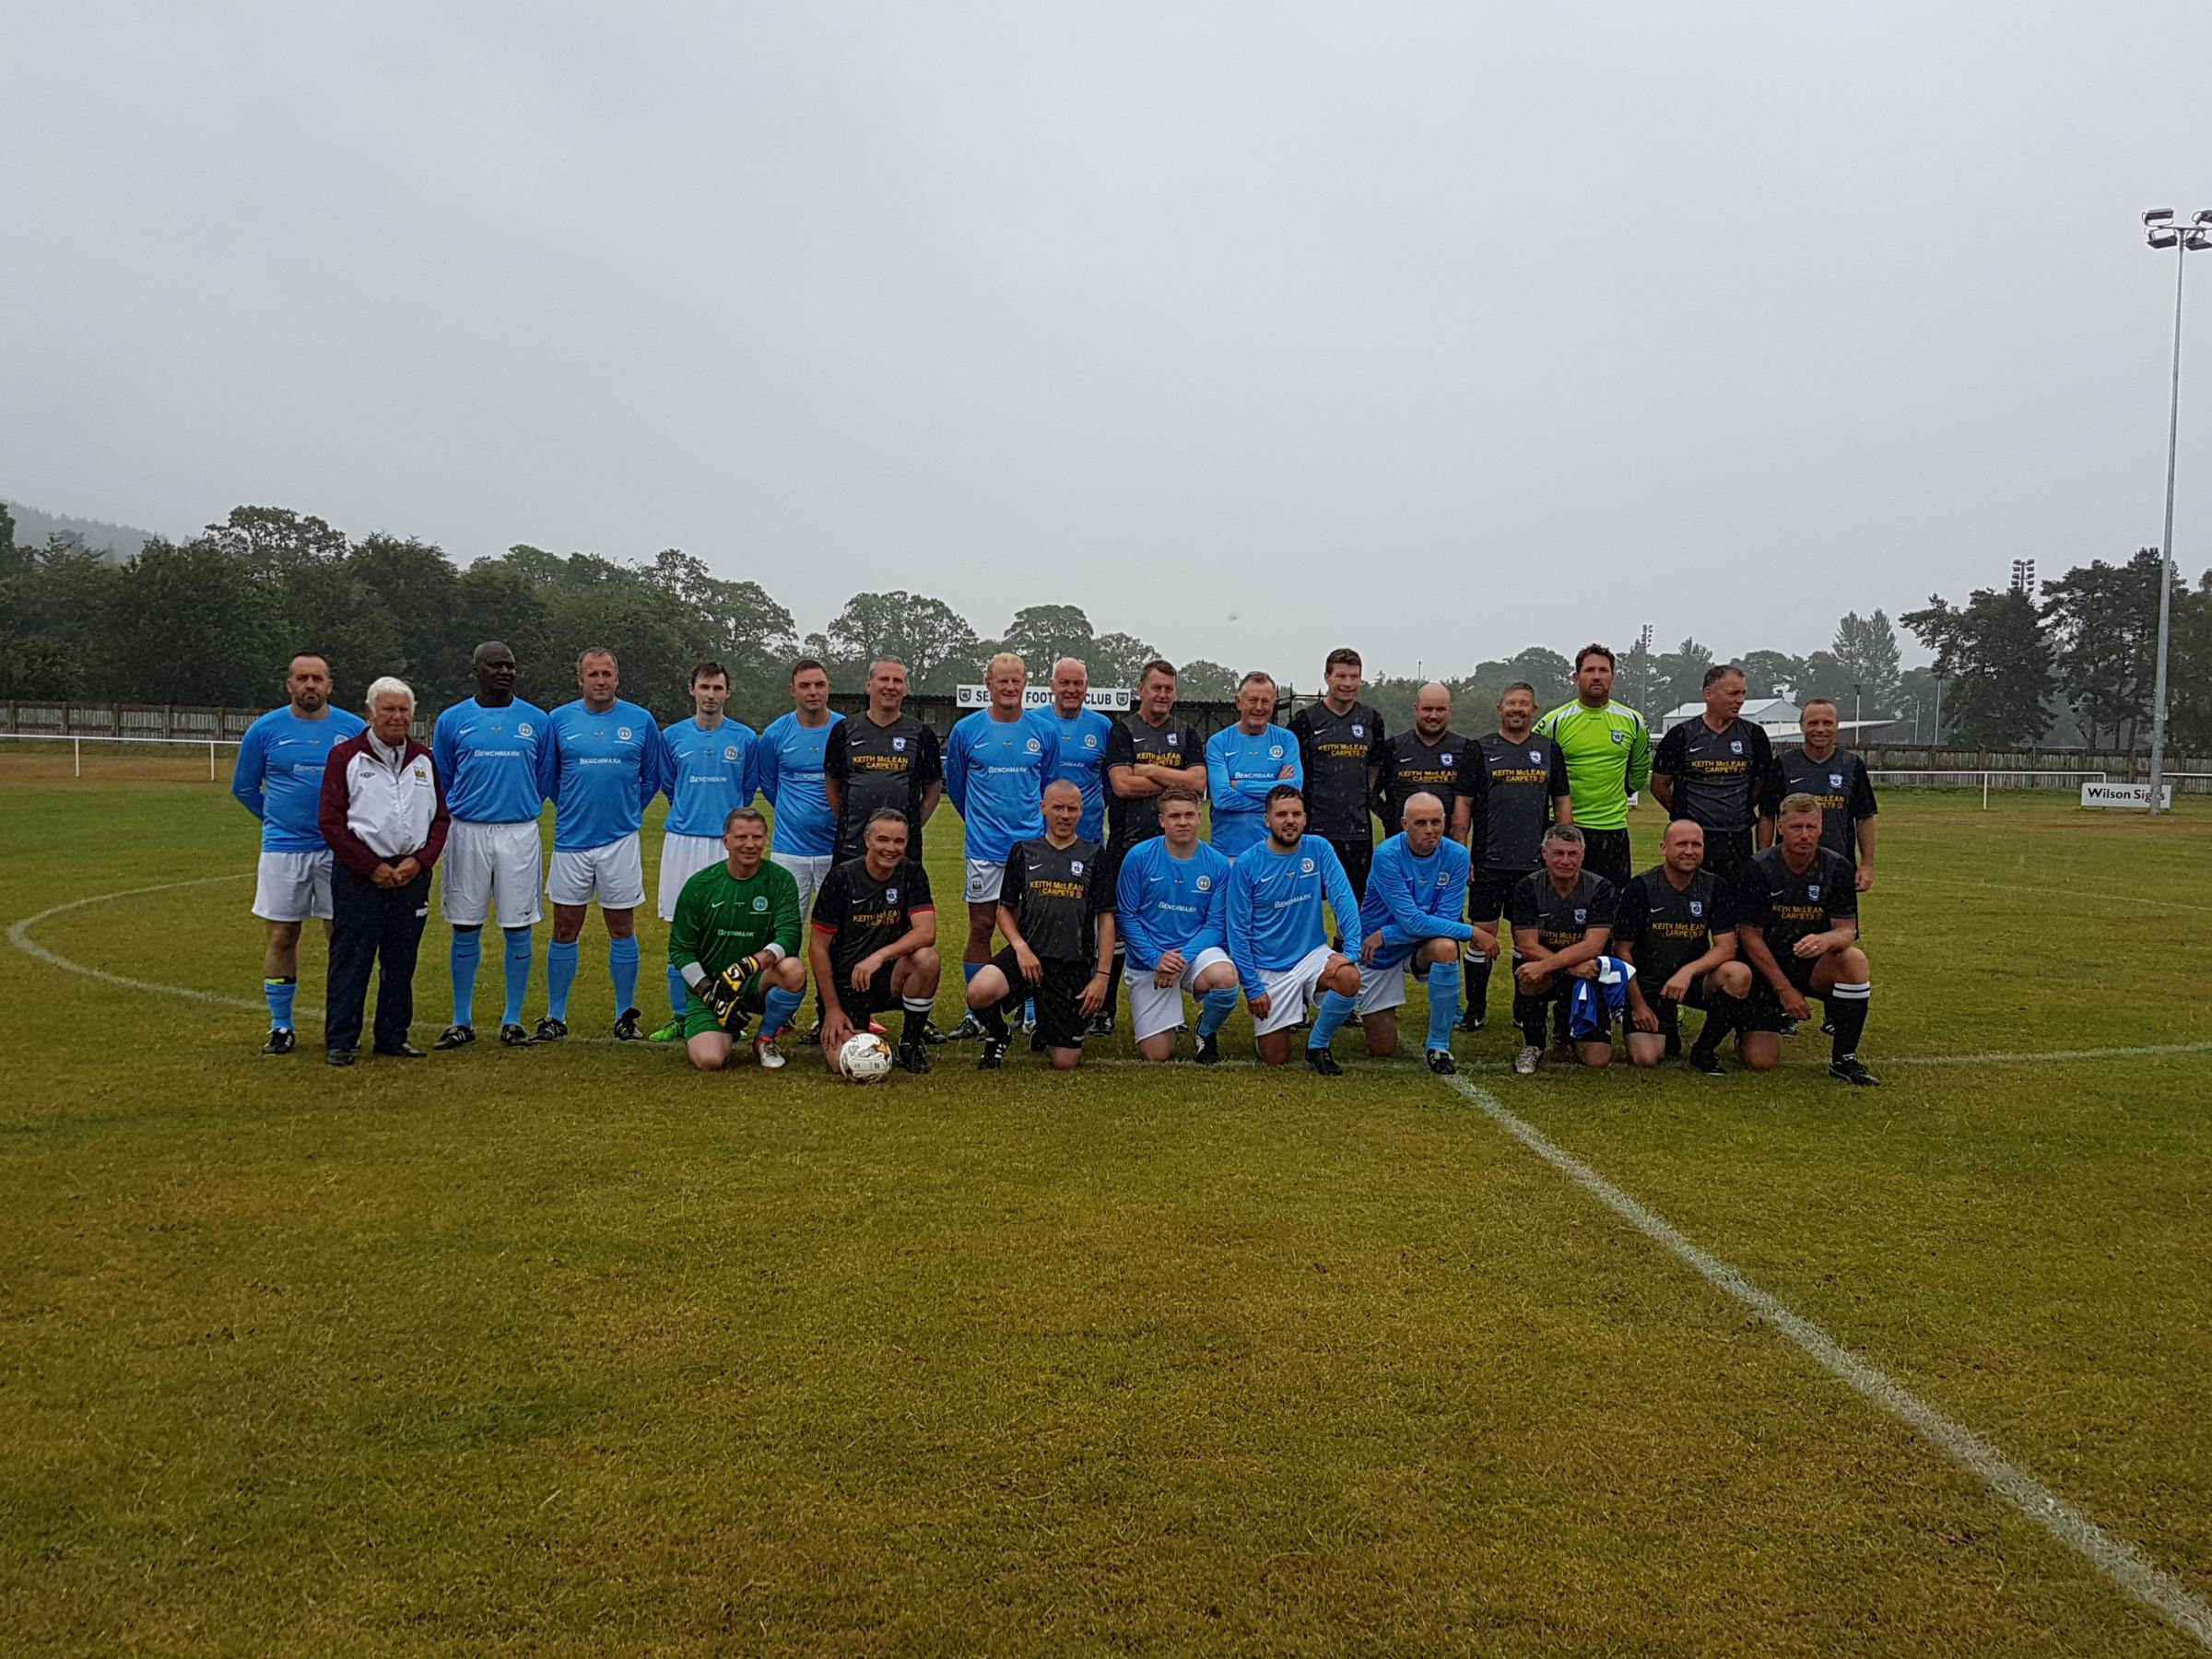 Selkirk Legends and Manchester City Legends line up ahead of kick off. Photo: Sheree Davison